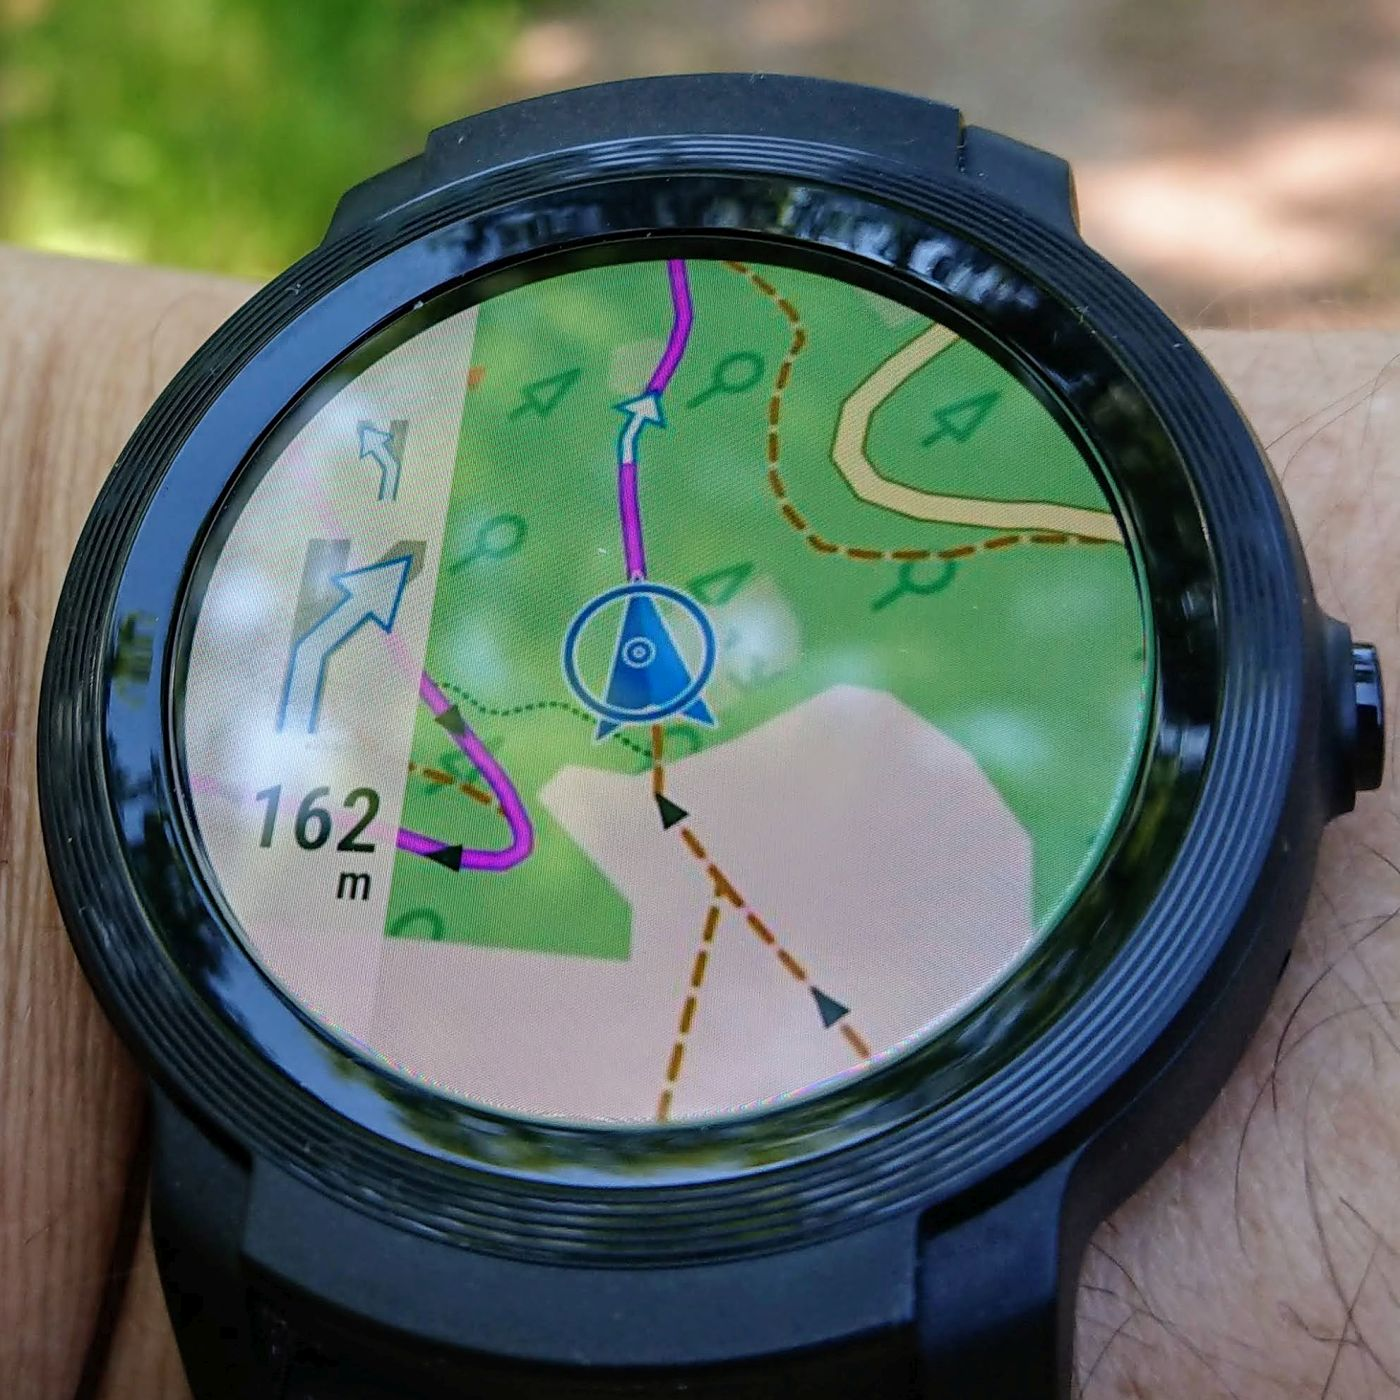 Locus Map Watch auf der TicWatch E2